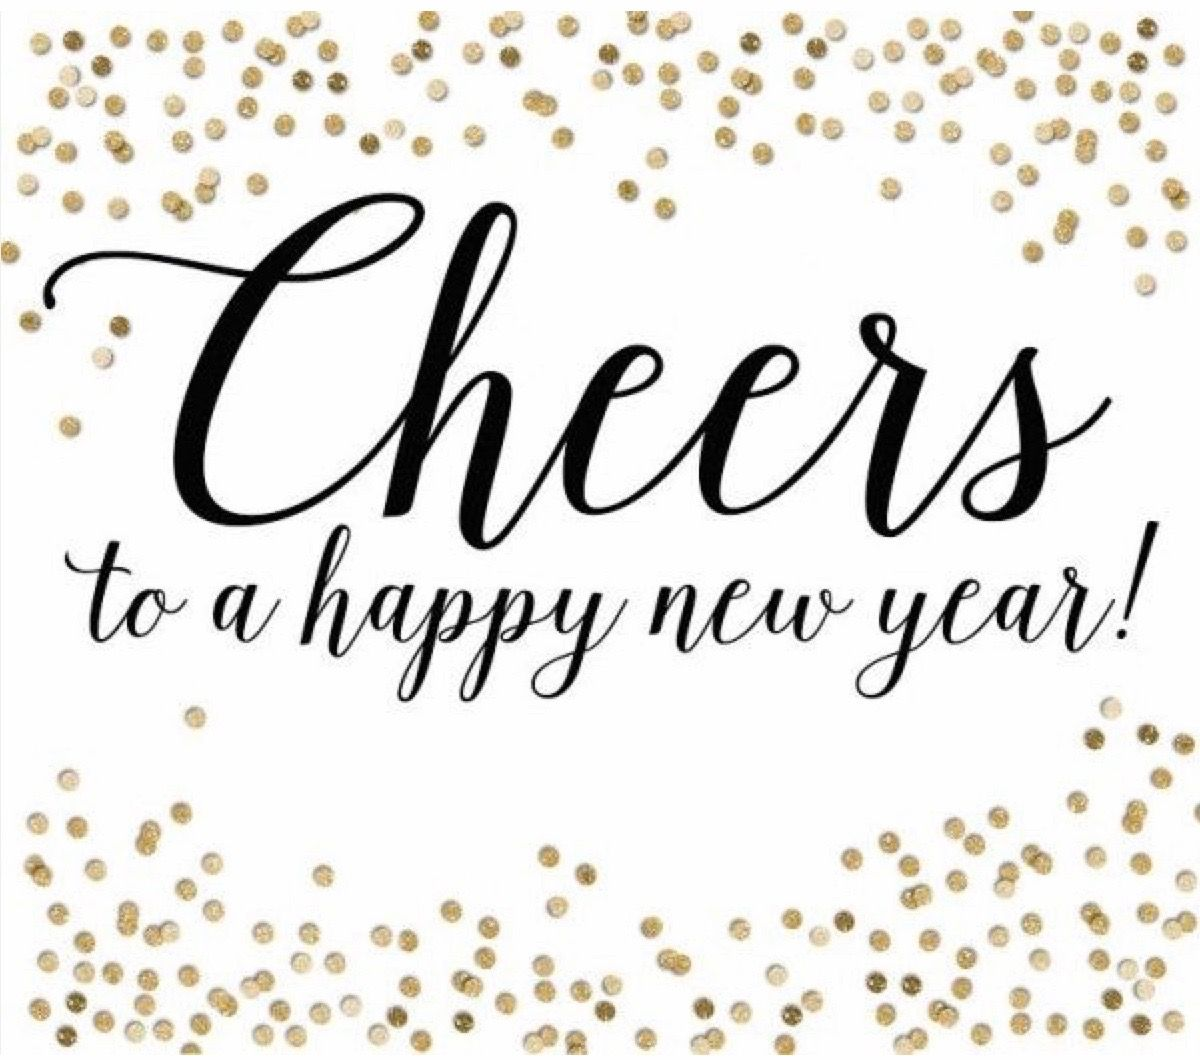 HAPPY NEW YEAR! image by Tracy Fridley Quotes about new